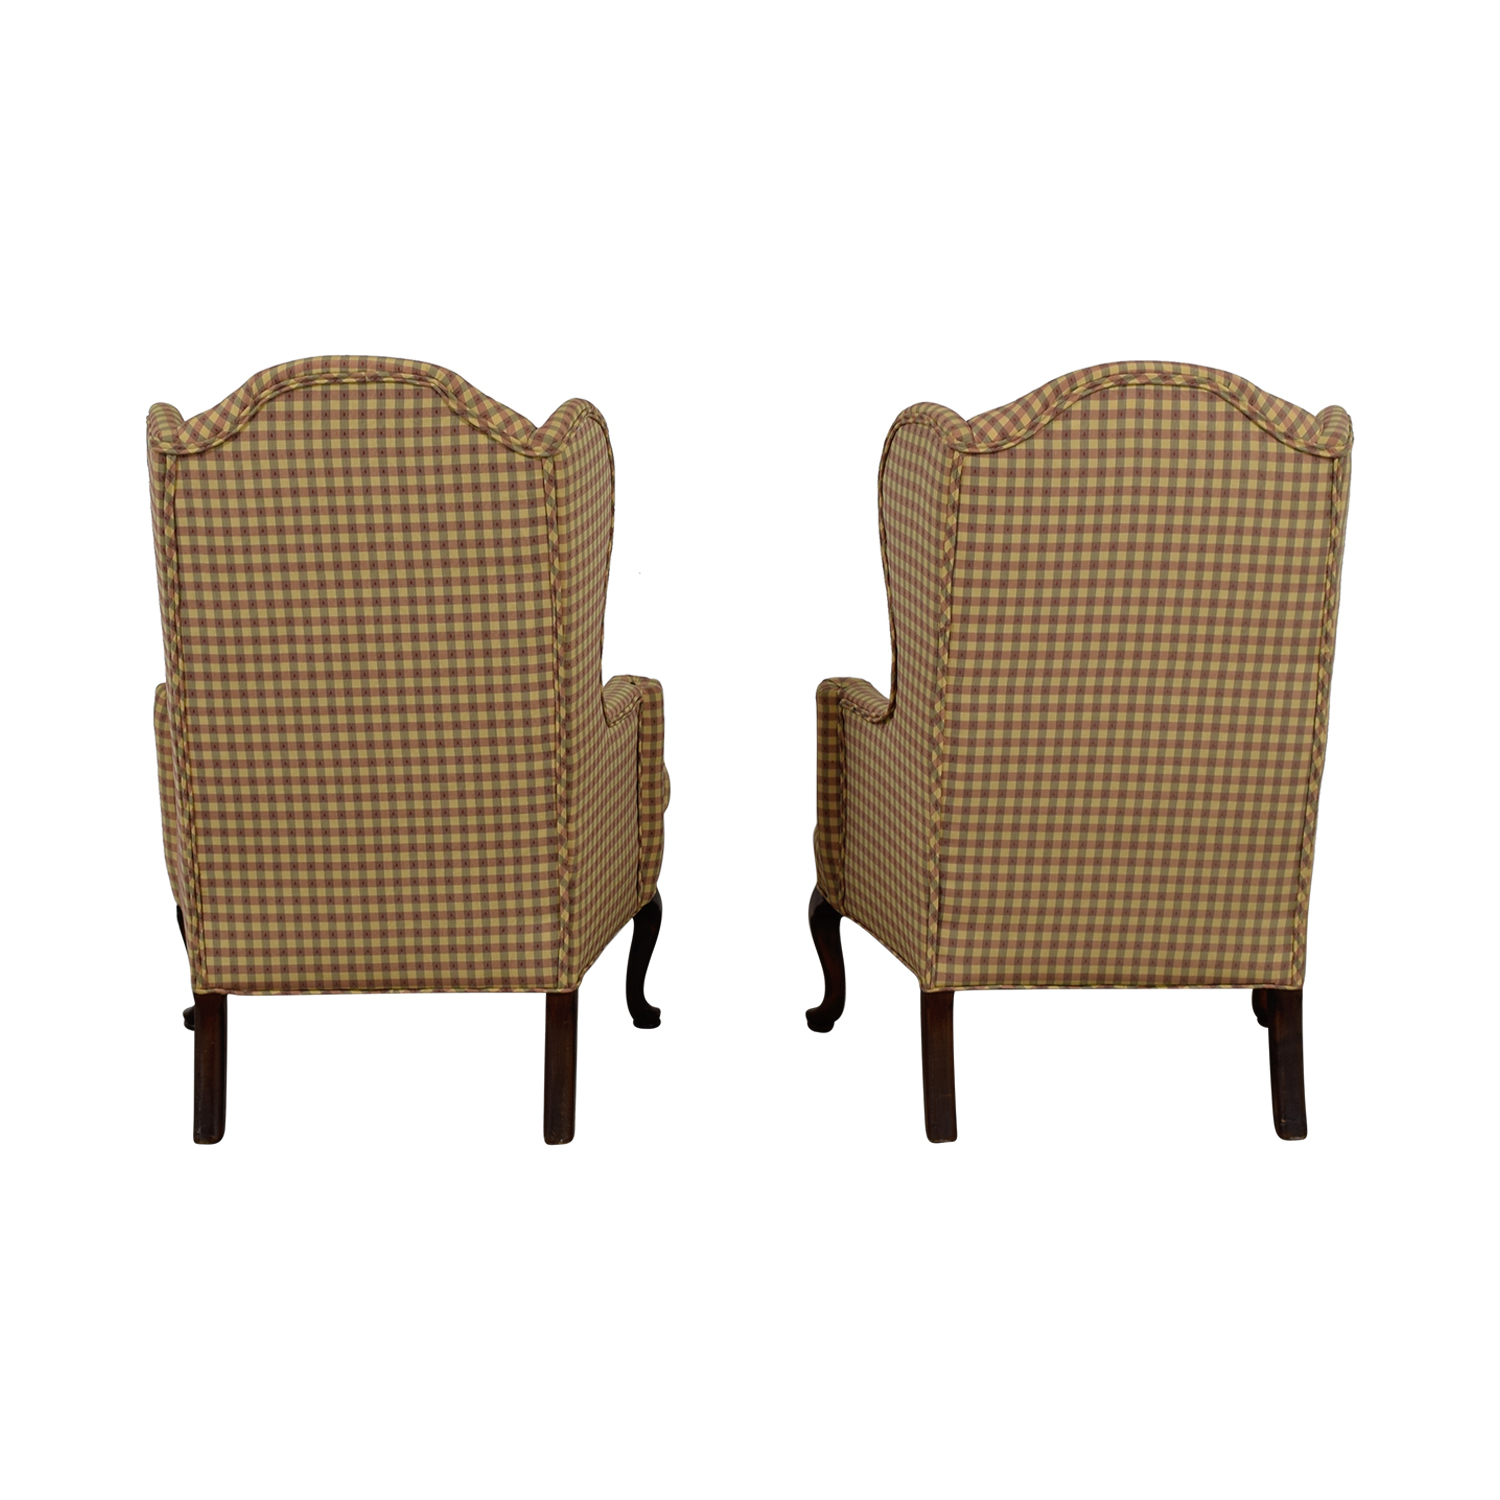 Ethan Allen Ethan Allen Plaid Queen Anne Accent Chairs nj